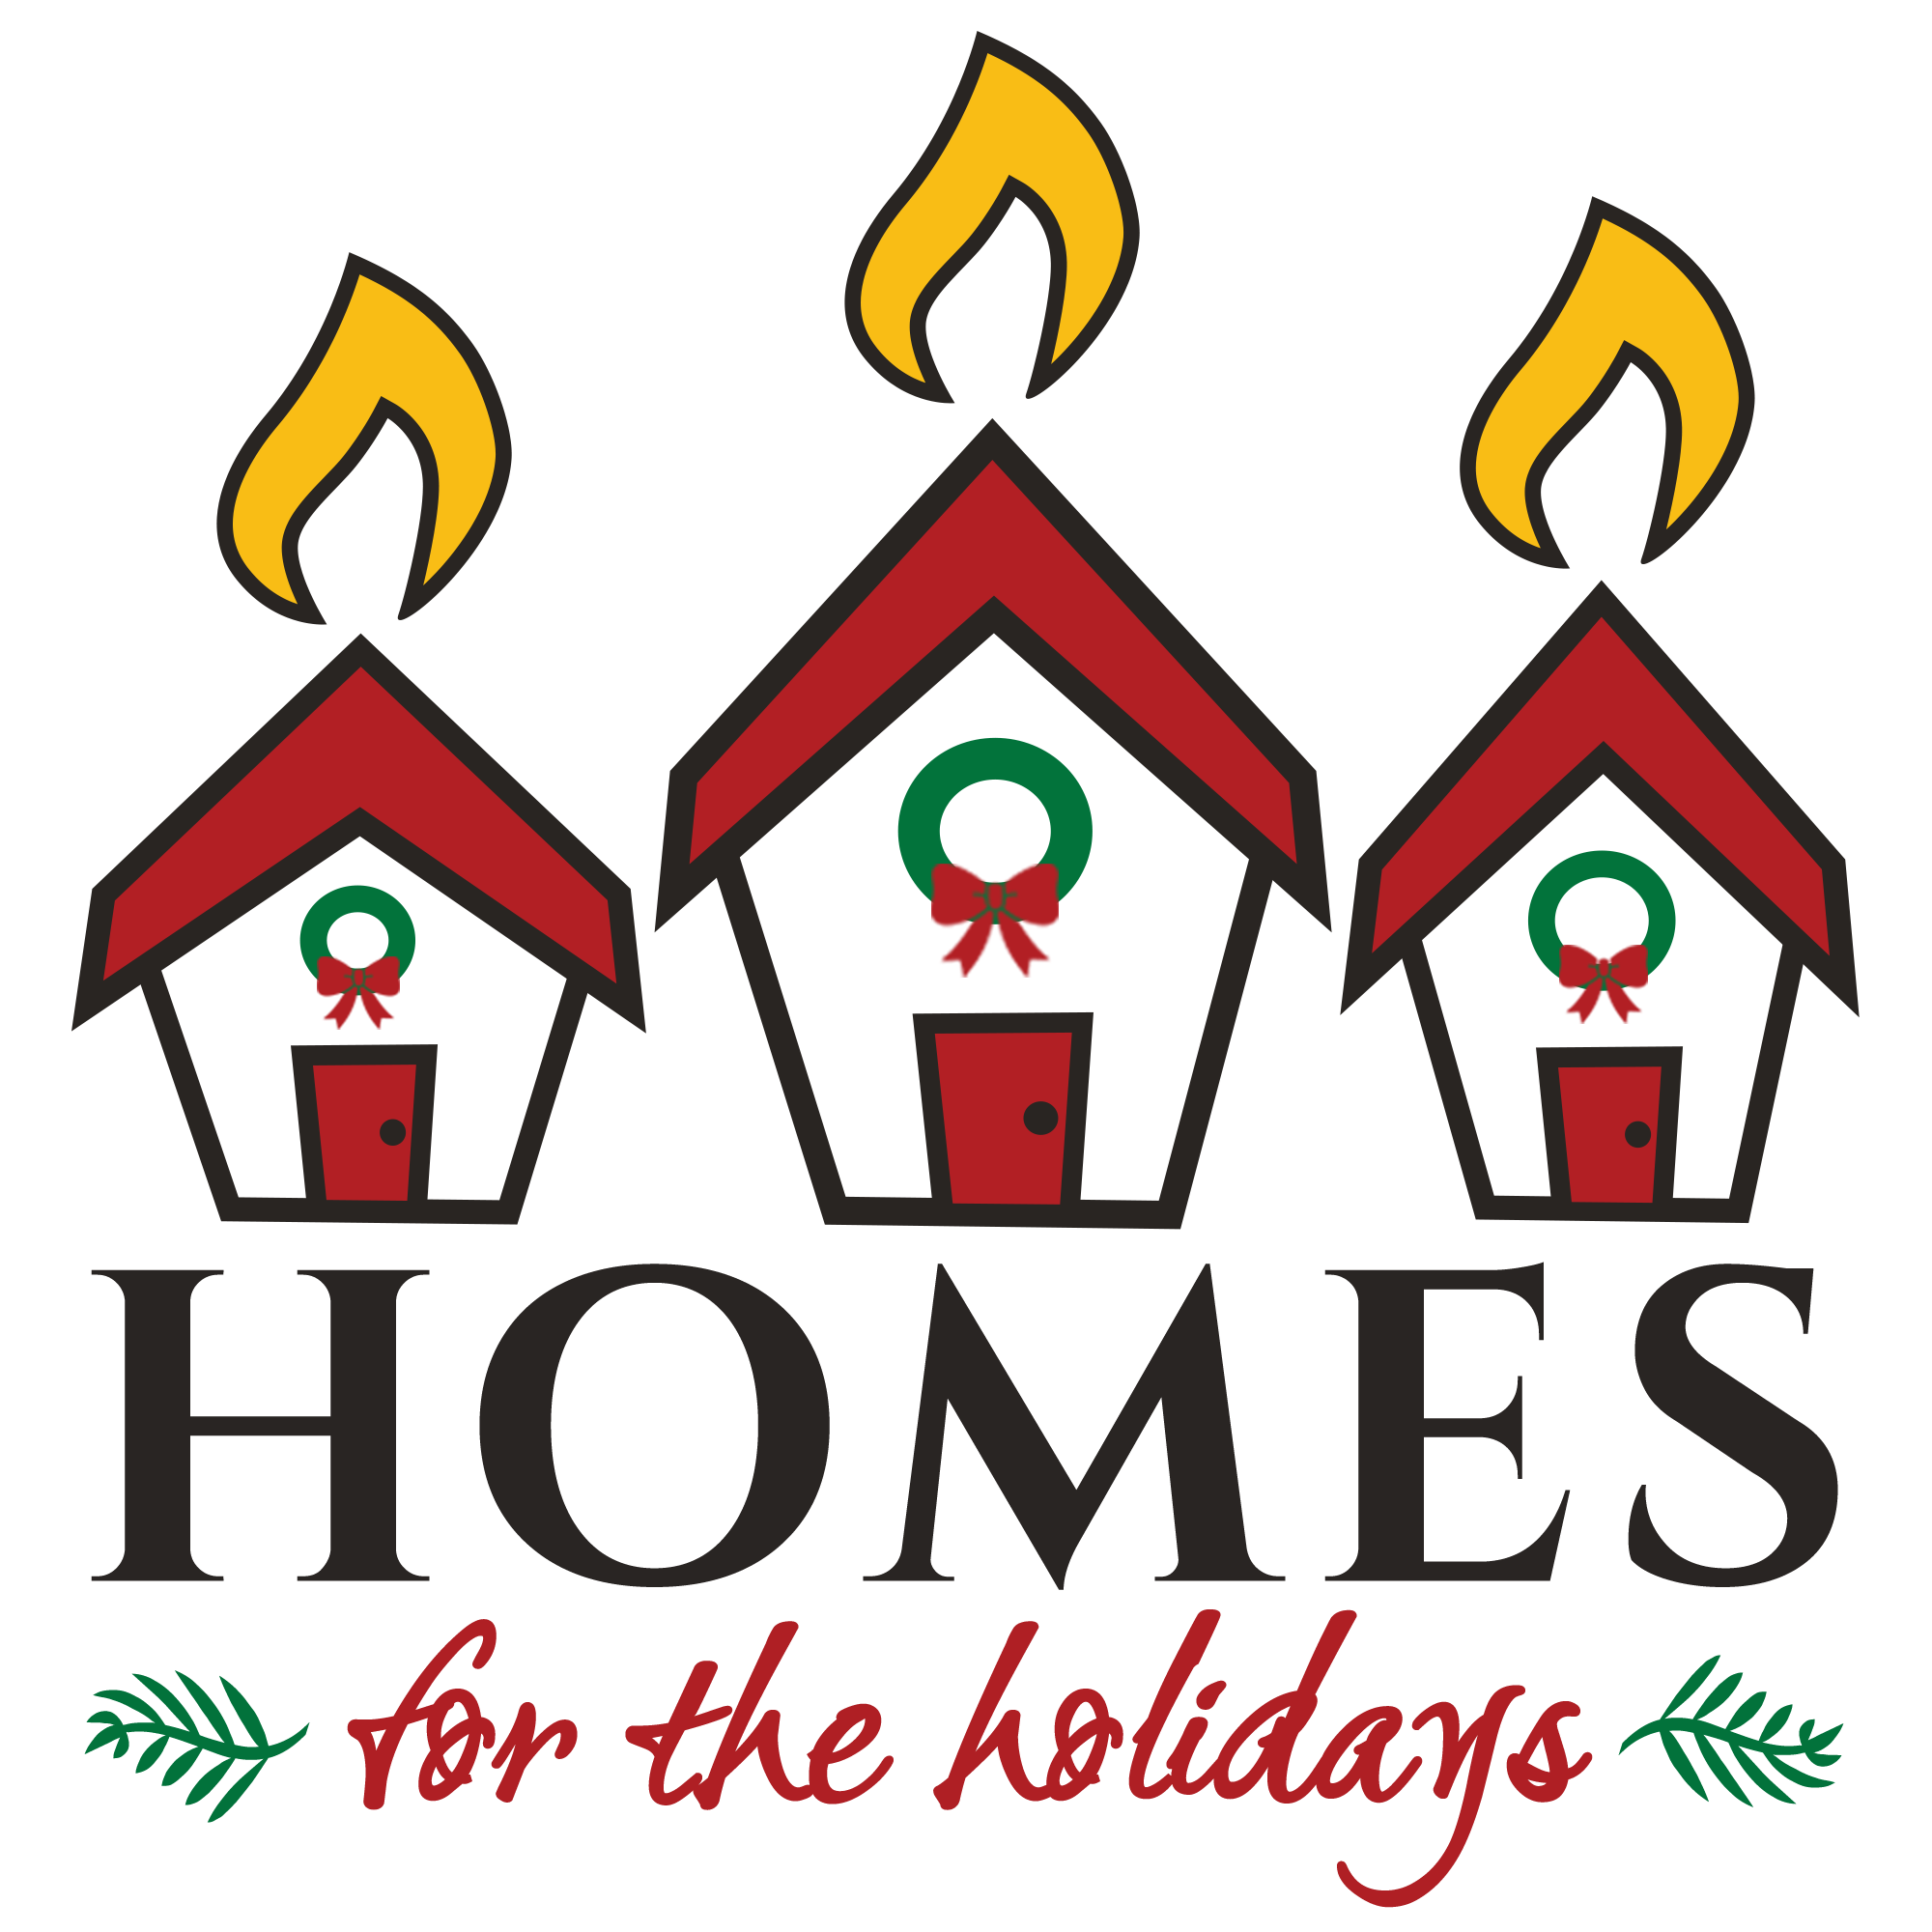 Homes for the holidays a candlelight tour pla media